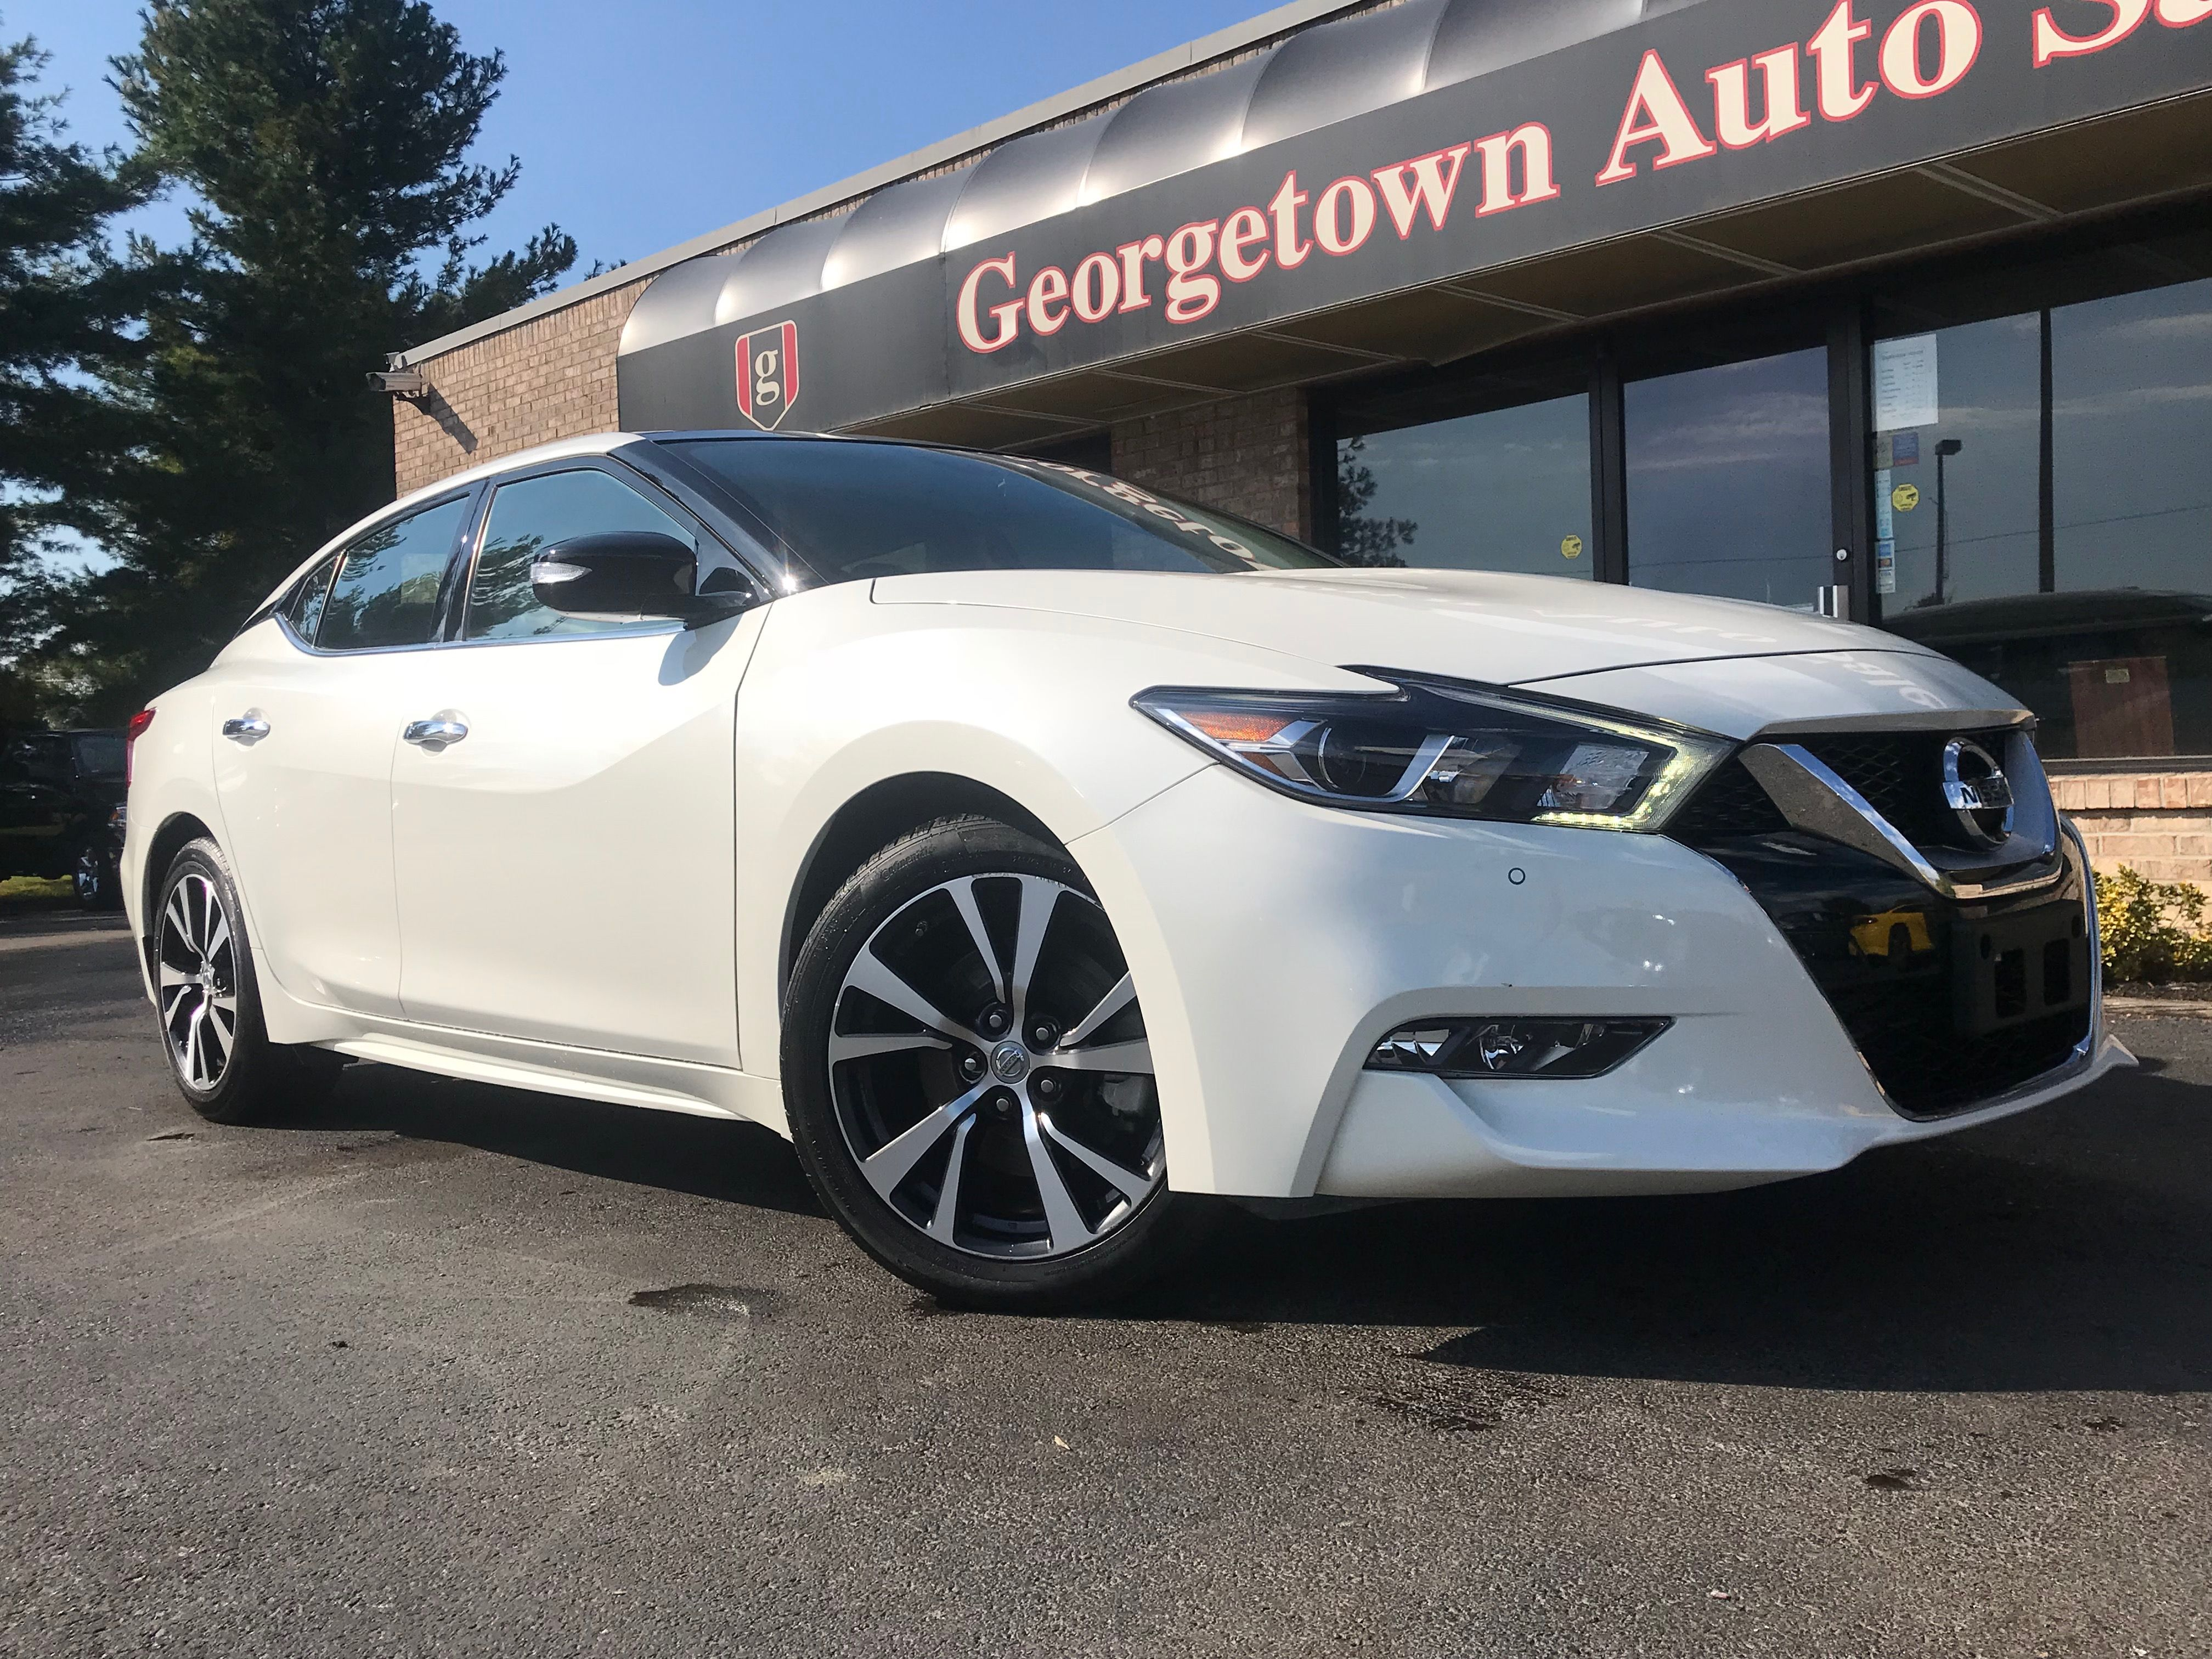 2016 Nissan Maxima Sl Loaded With Navigation And Panoramic Sunroof Car Dealership Nissan Maxima Used Cars